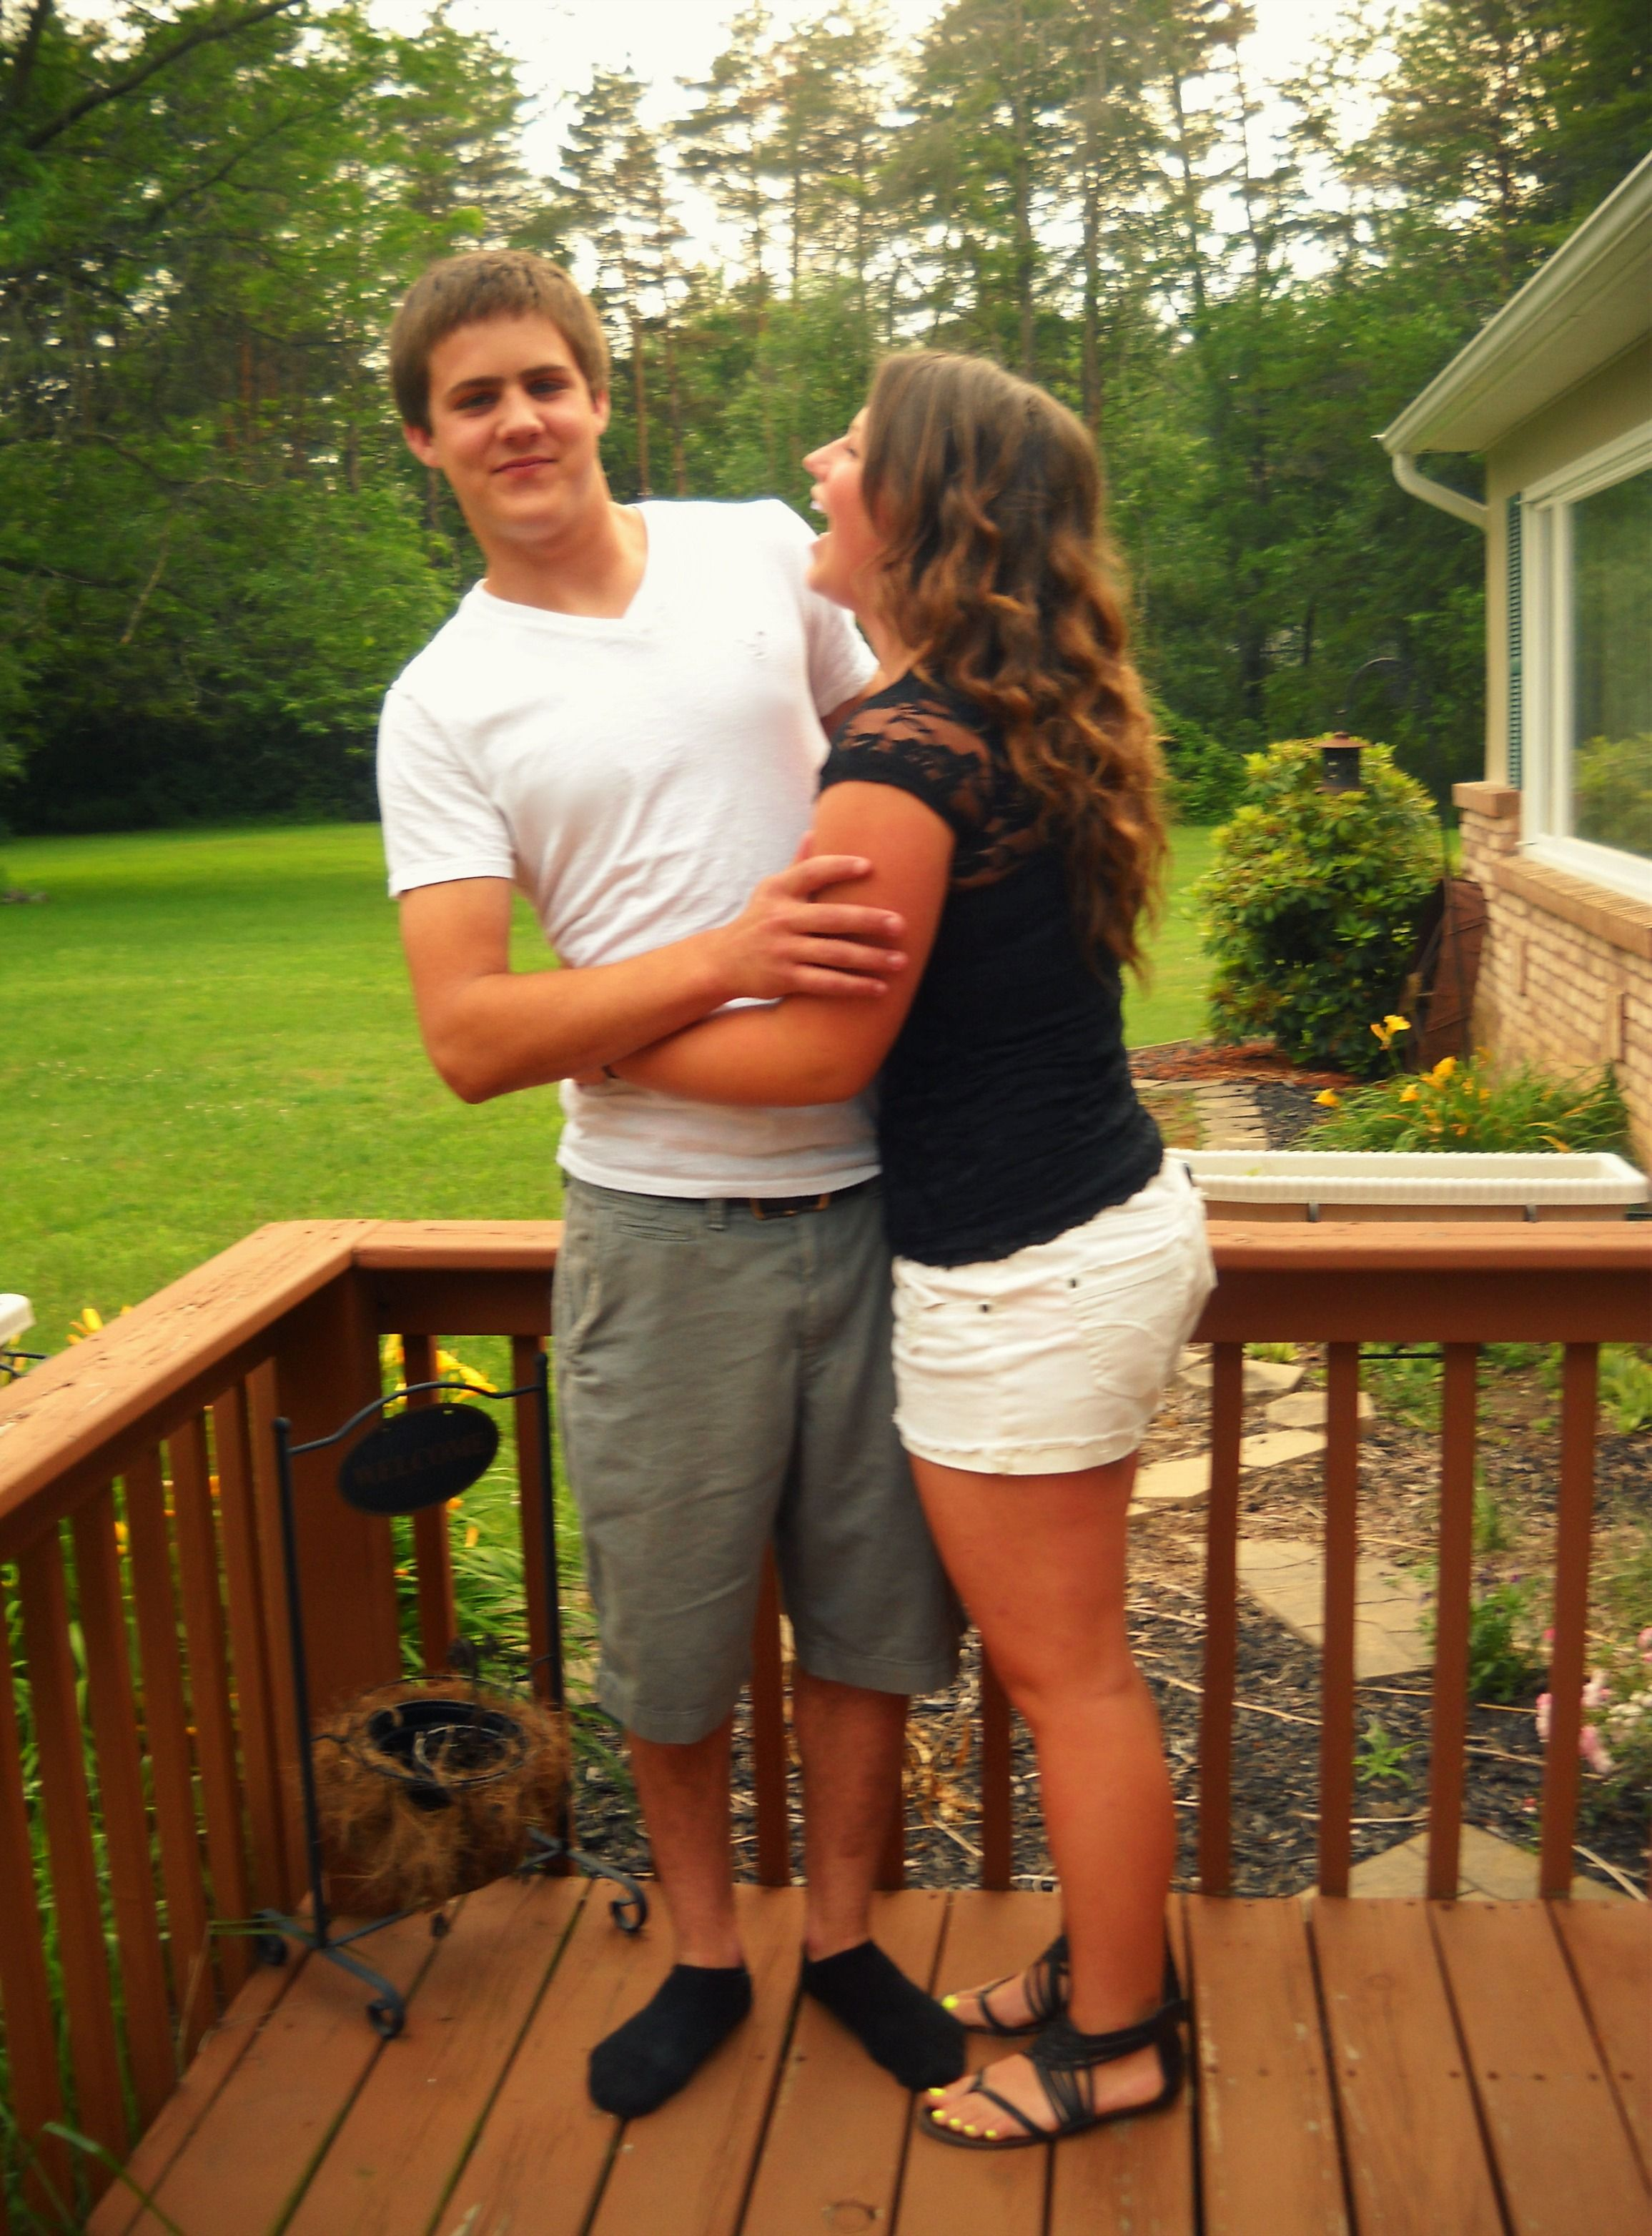 perfectly describes our relationship,lmao #iloveyou